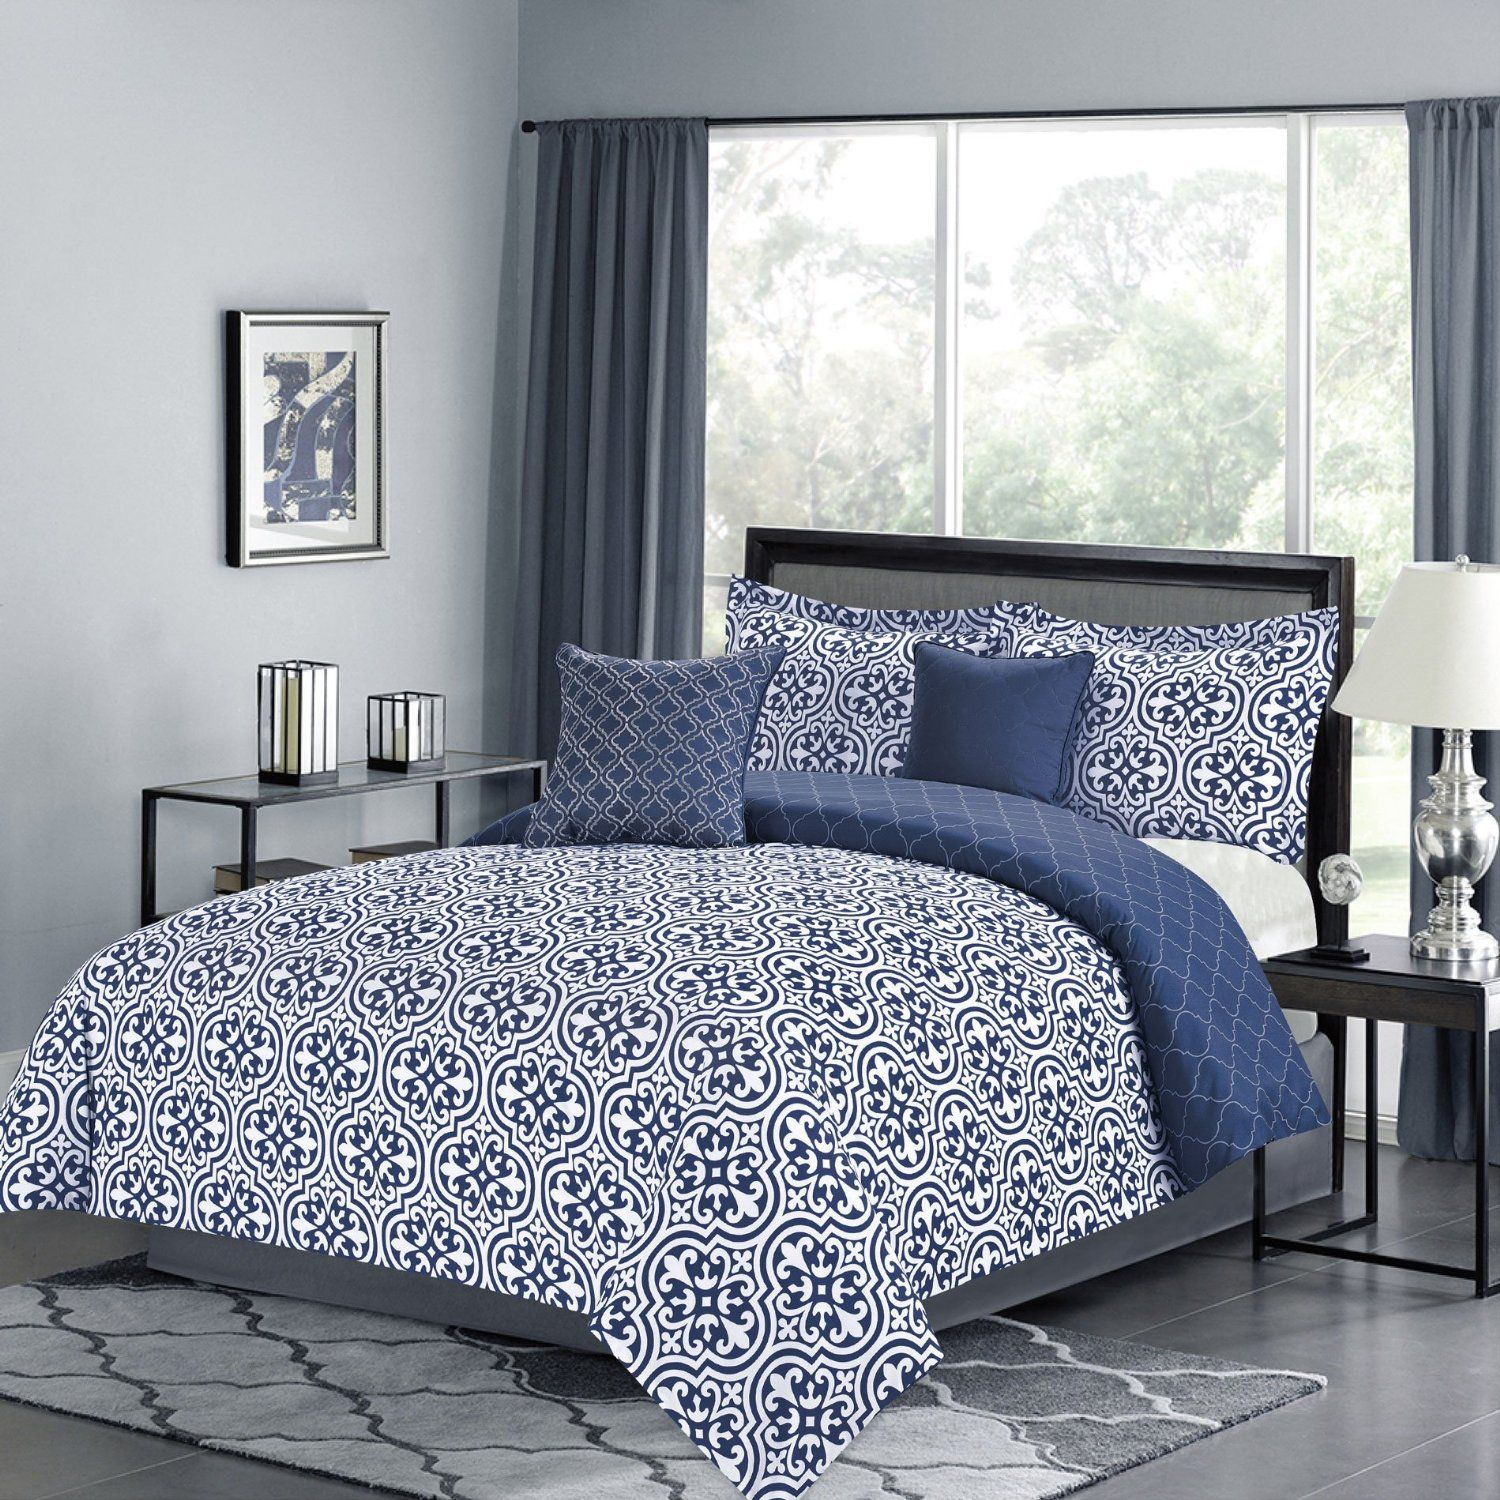 Amazon Queen forter 5 Pc Bedding Set Vintage Navy Blue